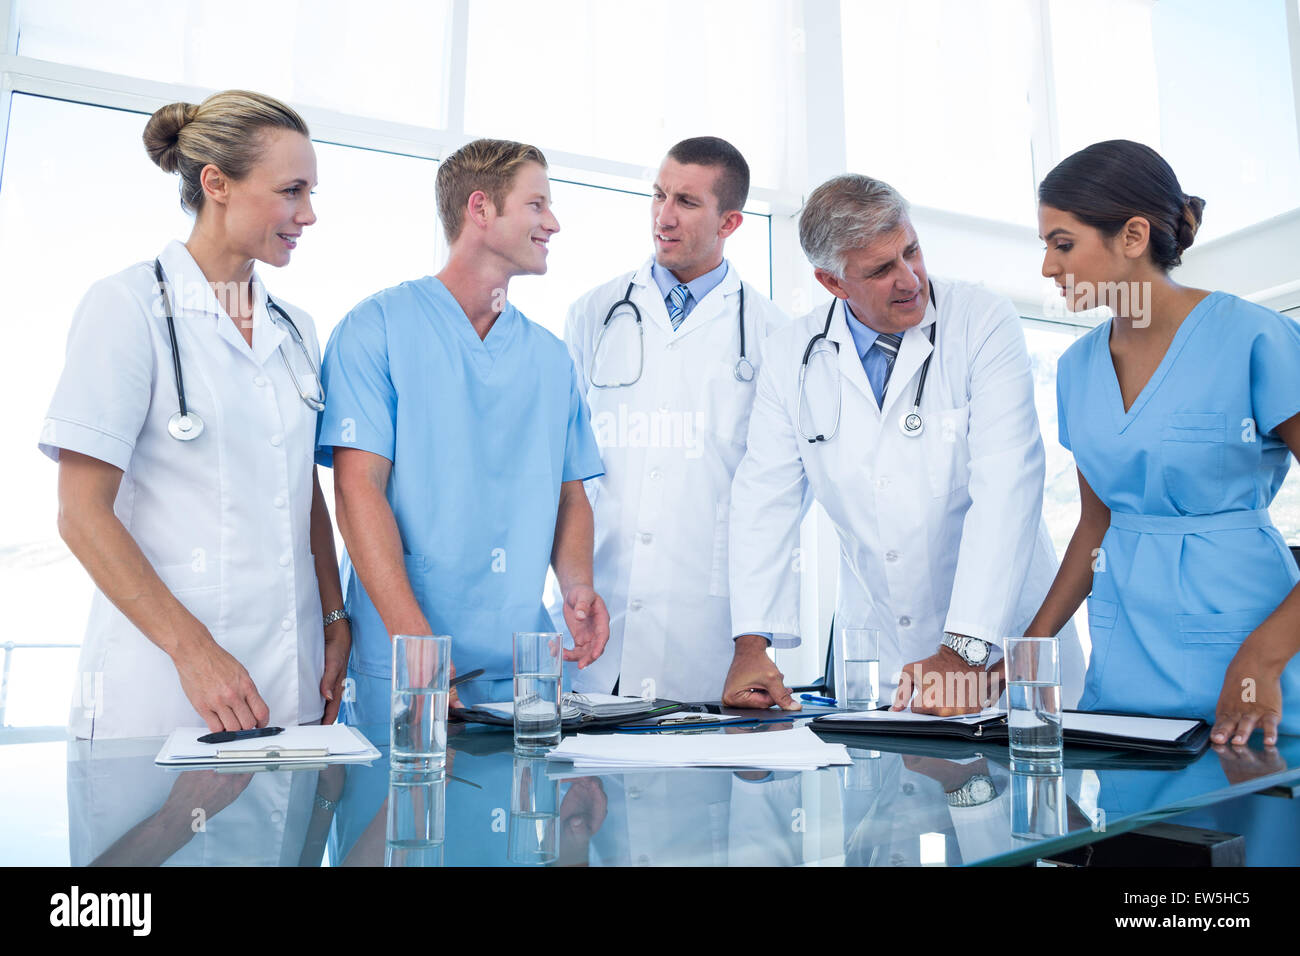 Team of doctors looking at their diaries - Stock Image